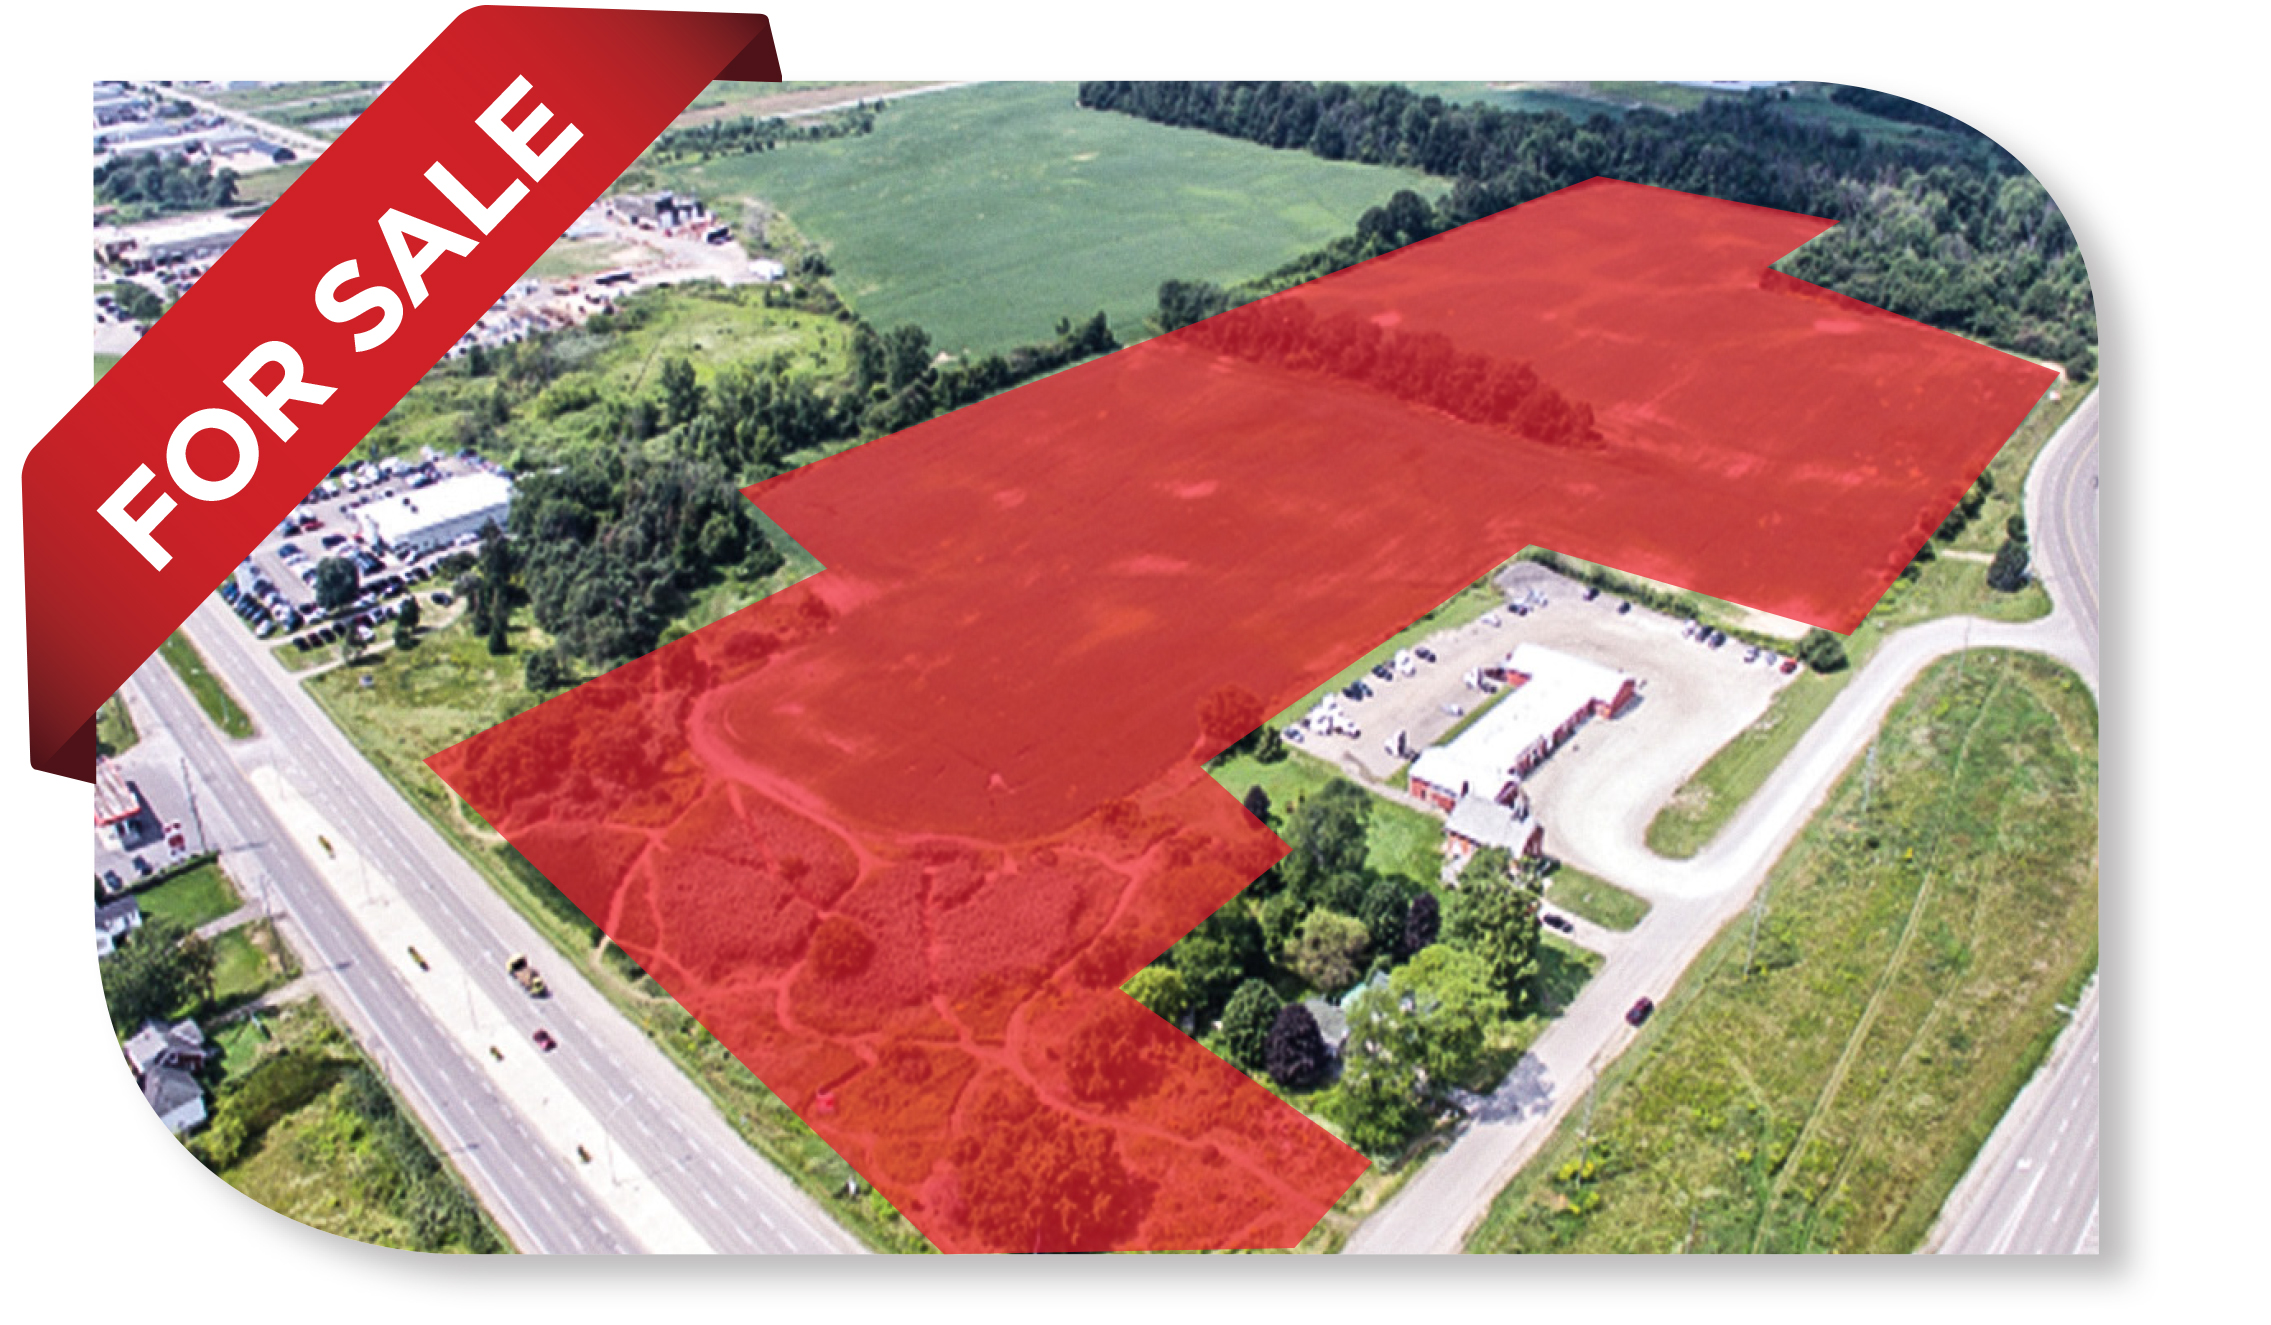 35.15 Acres of Land